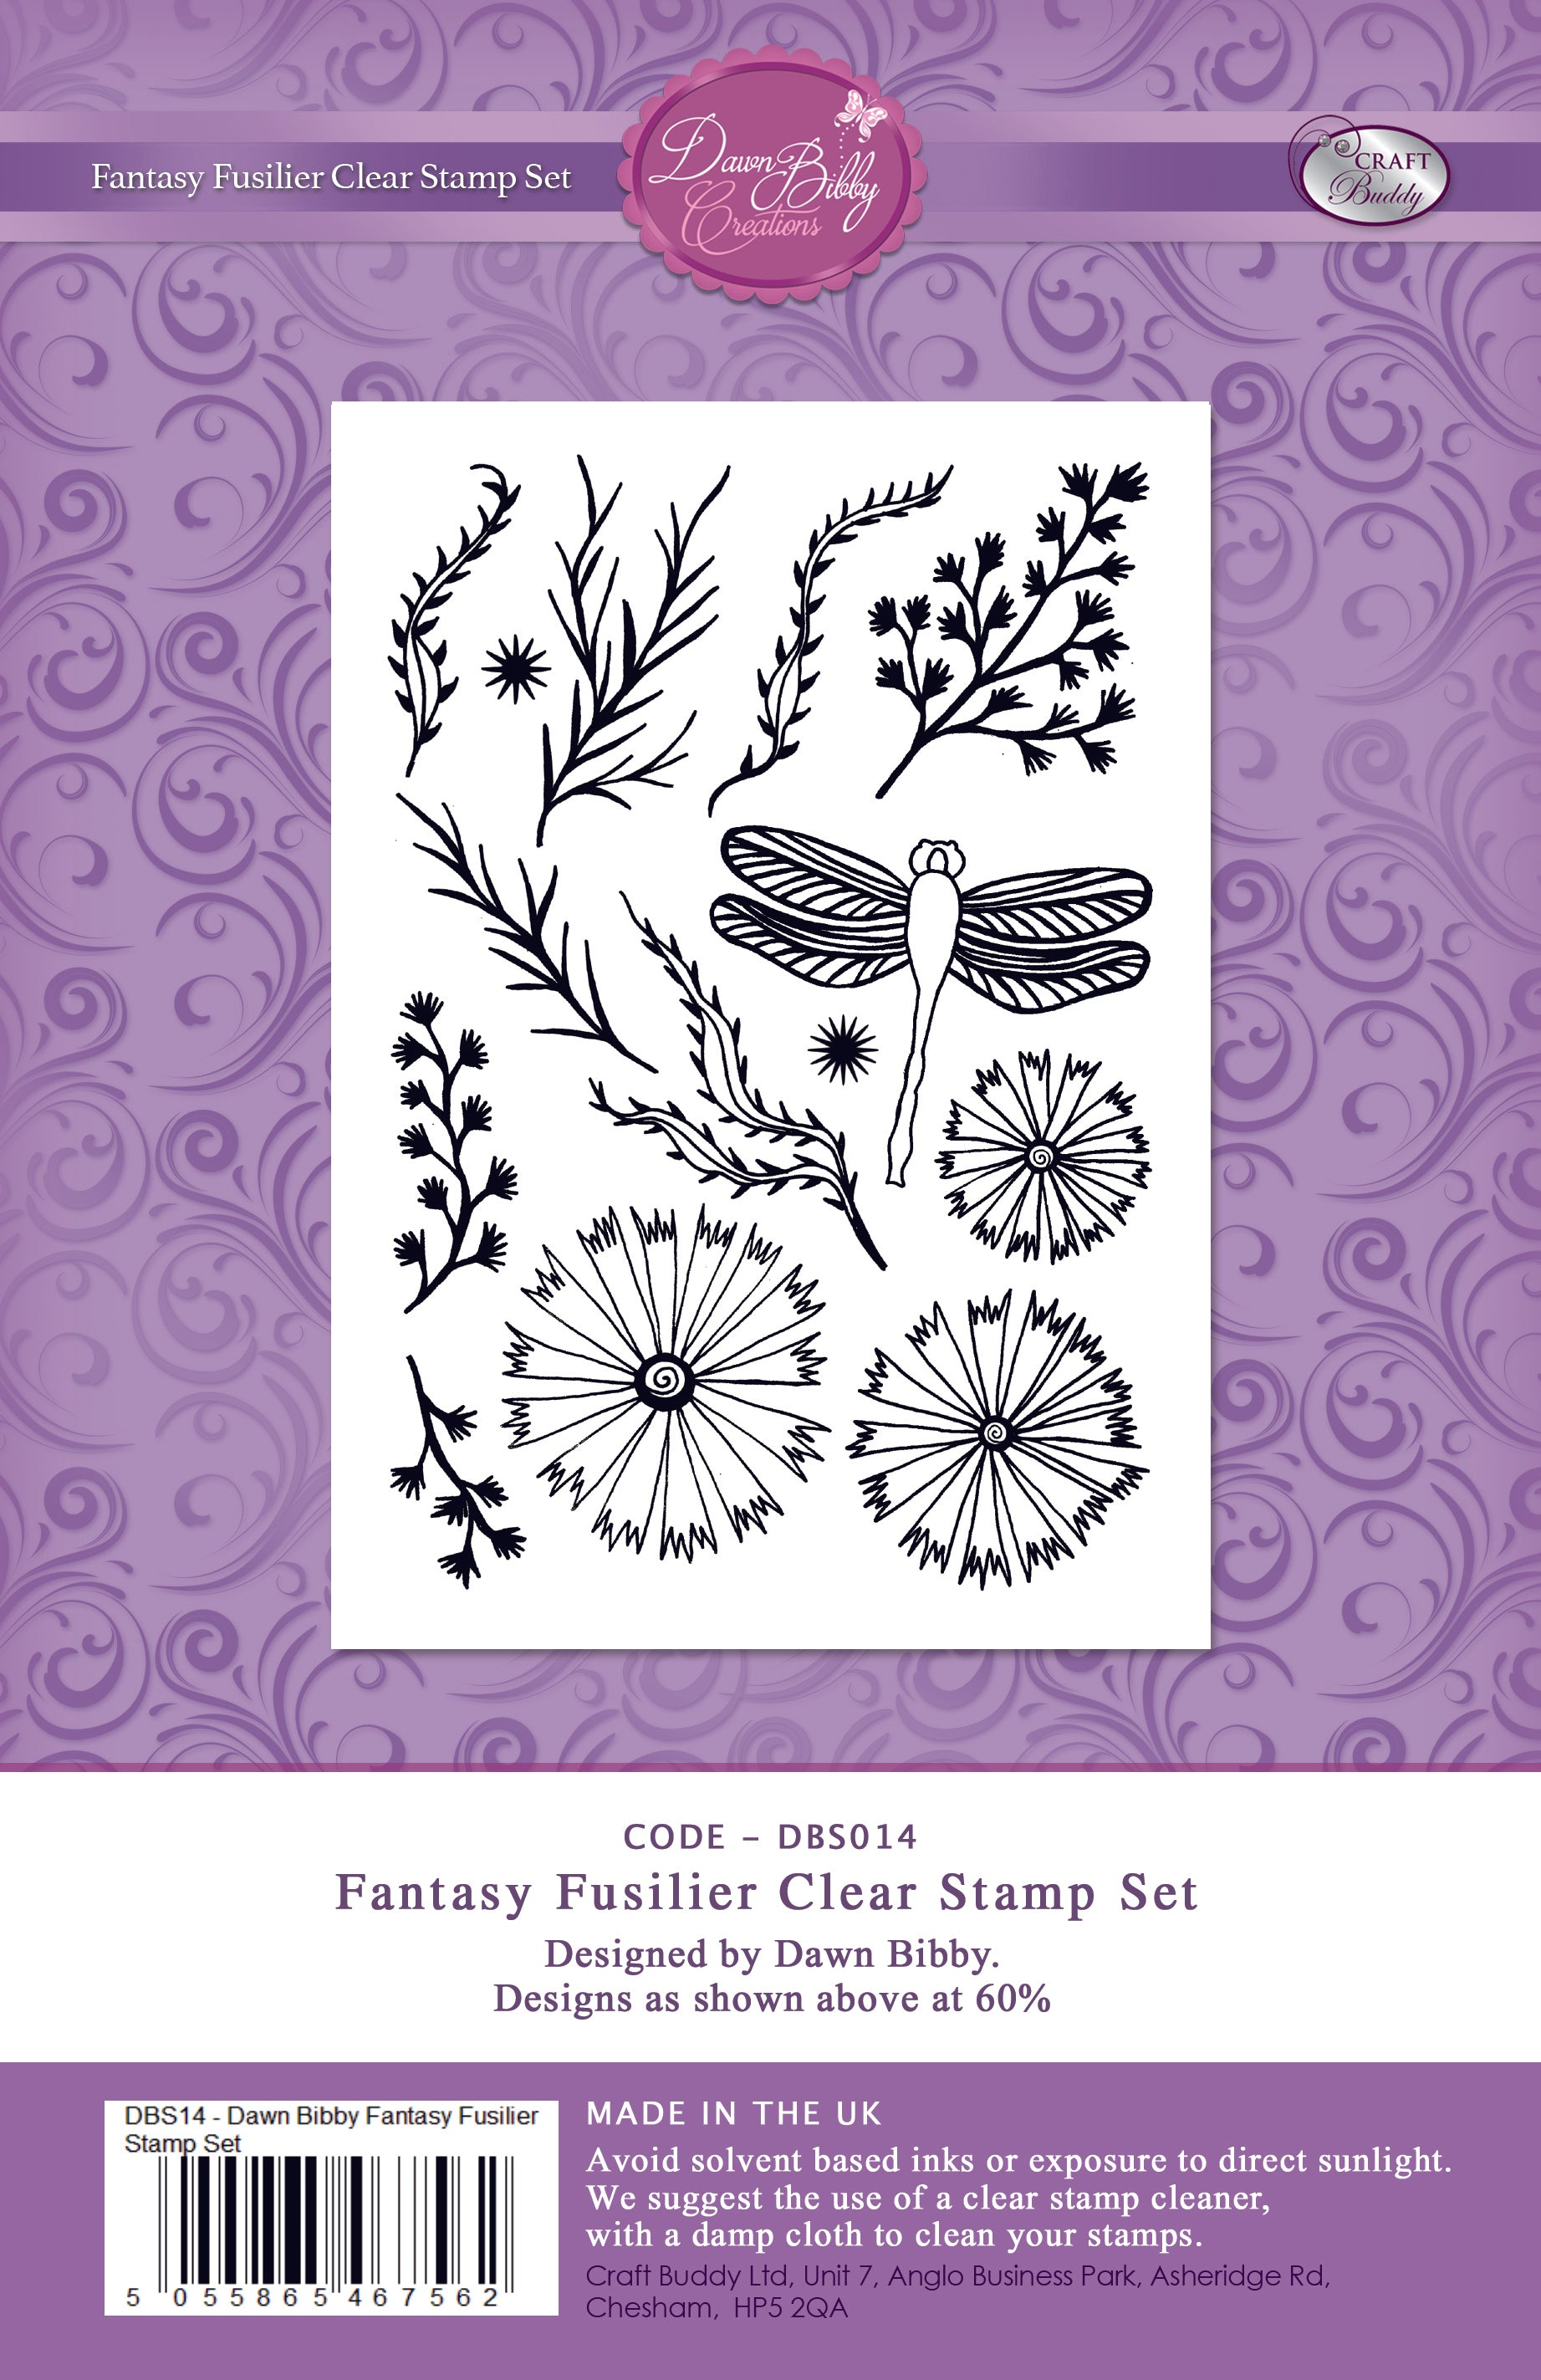 Fantasy Fusilier Clear Stamp Set